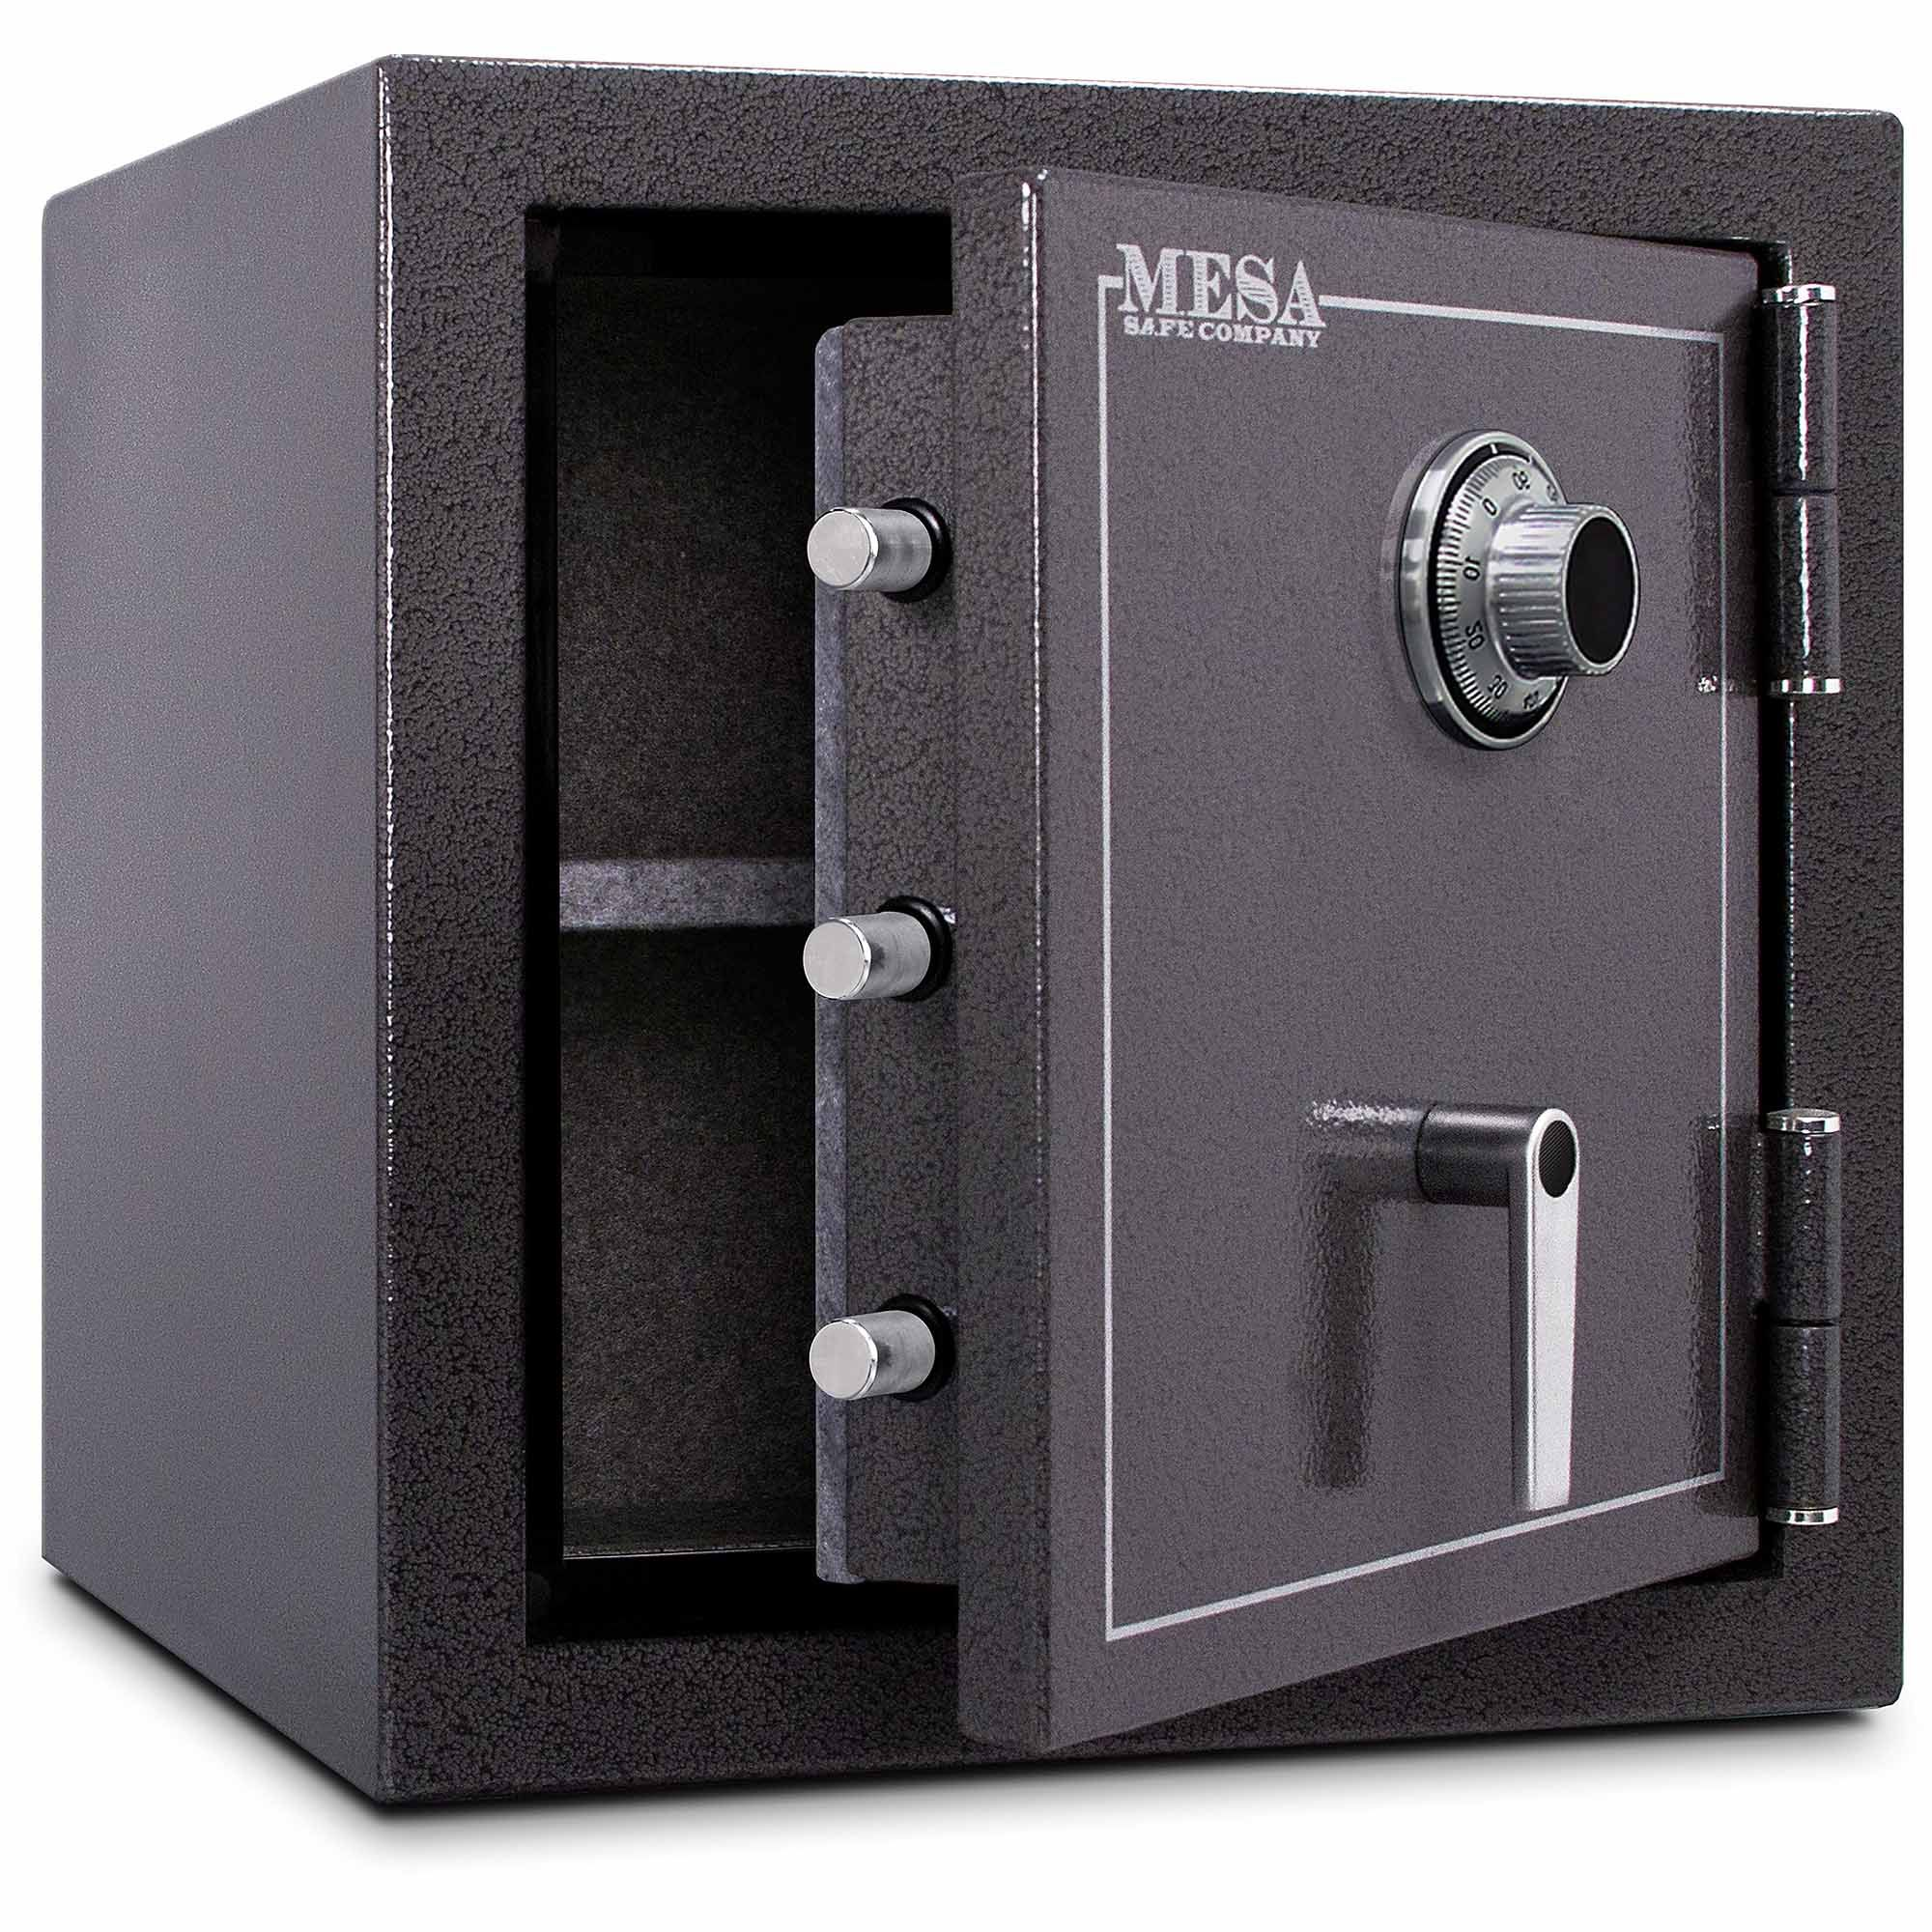 Mesa Safe Mbf2020c Fire Resistant Security Safe With Mechanical